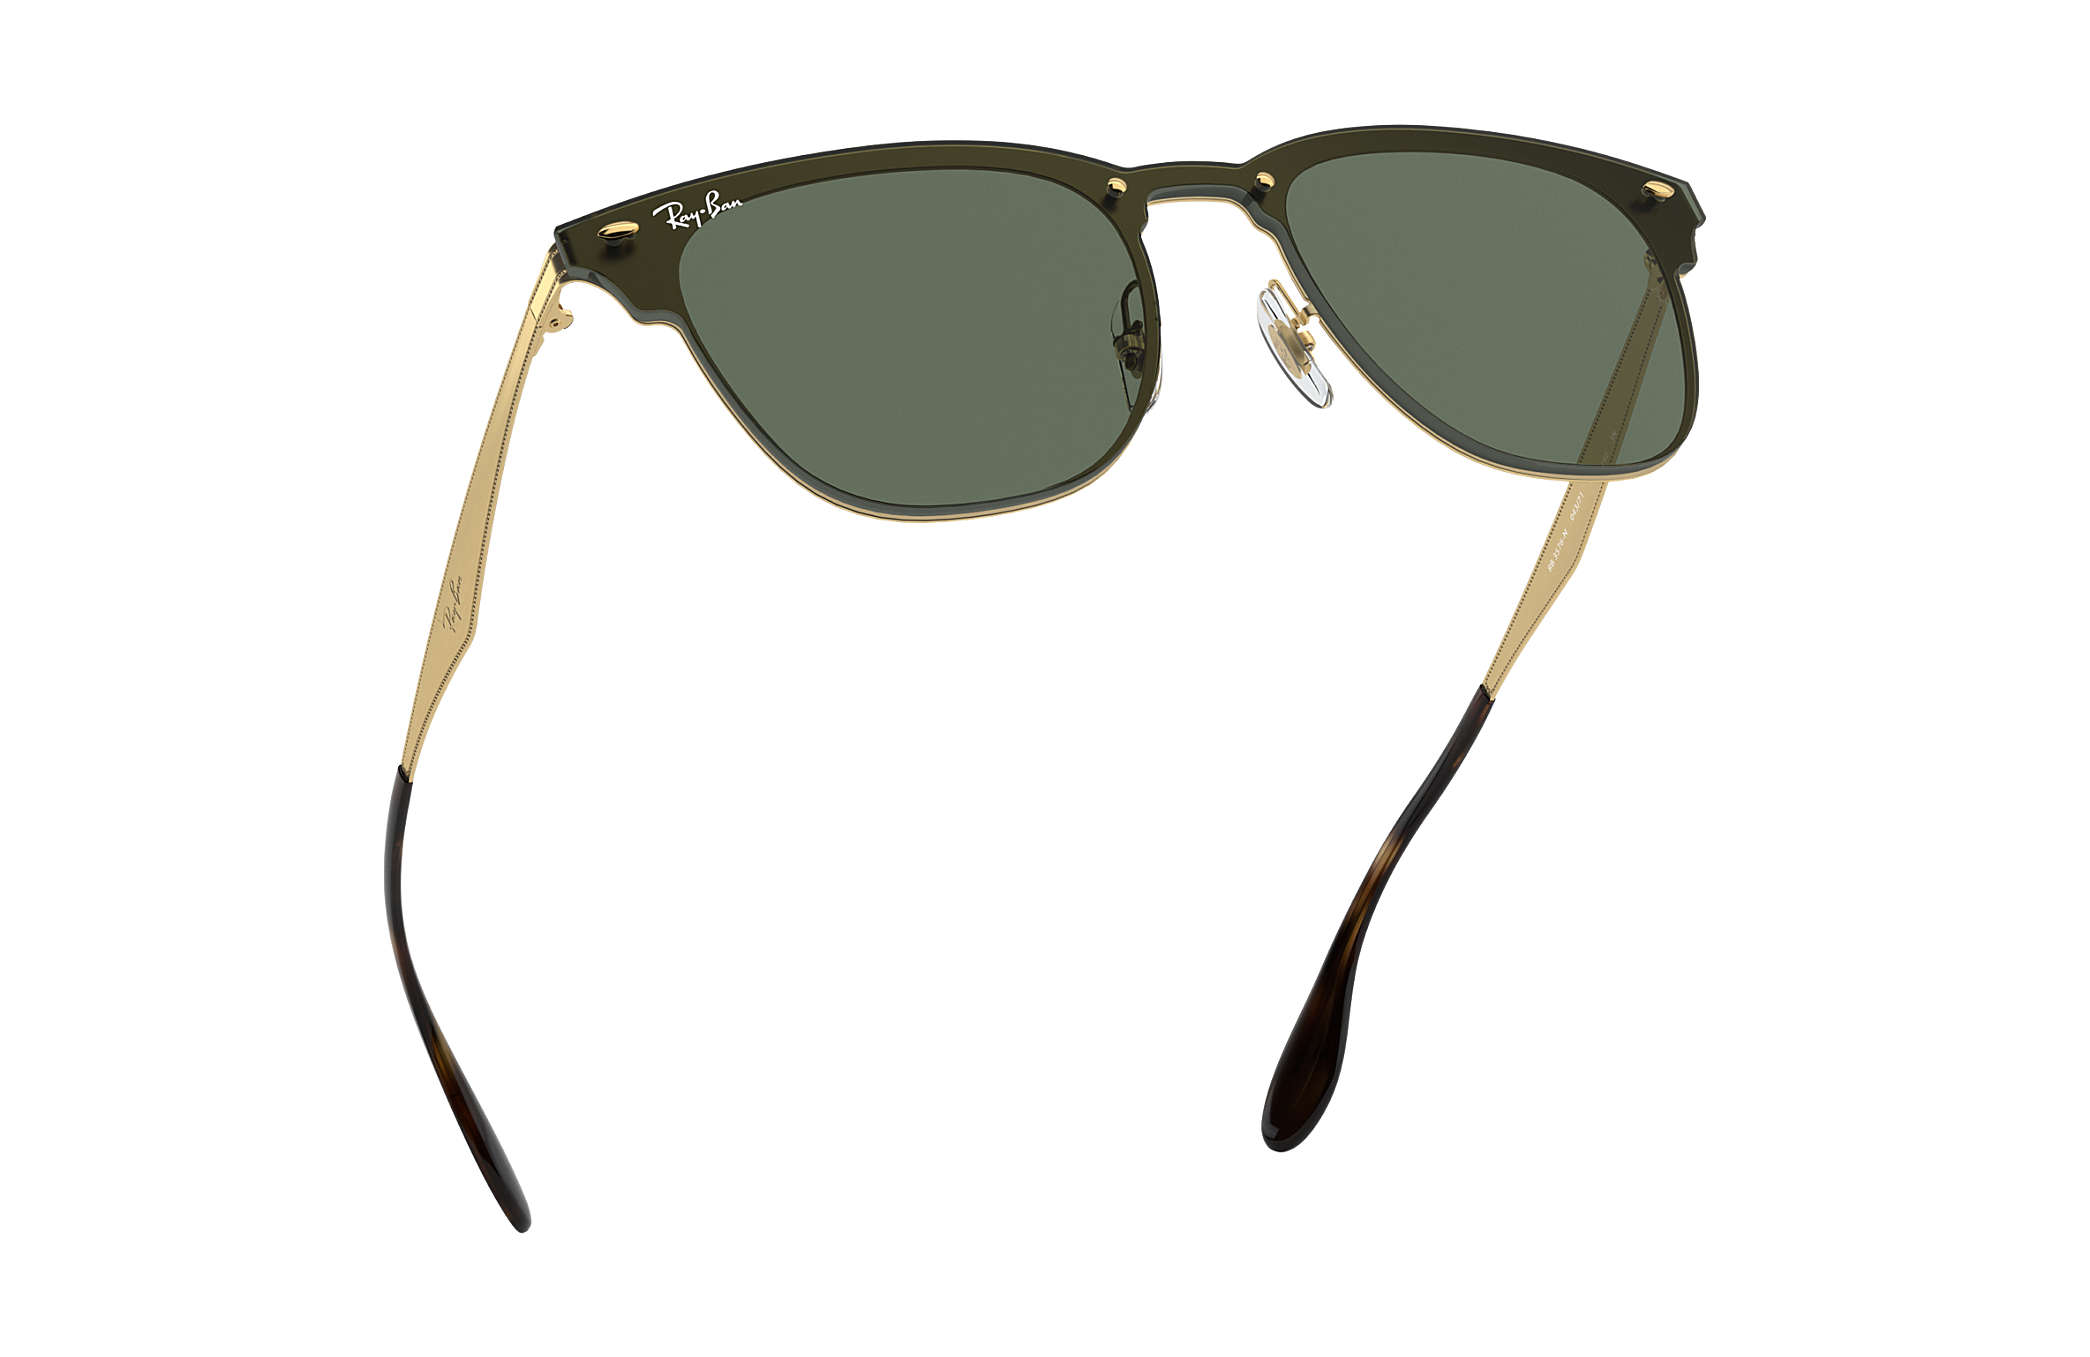 8fd412410428f Ray-Ban Blaze Clubmaster RB3576N Ouro - Metal - Lentes Verde ...